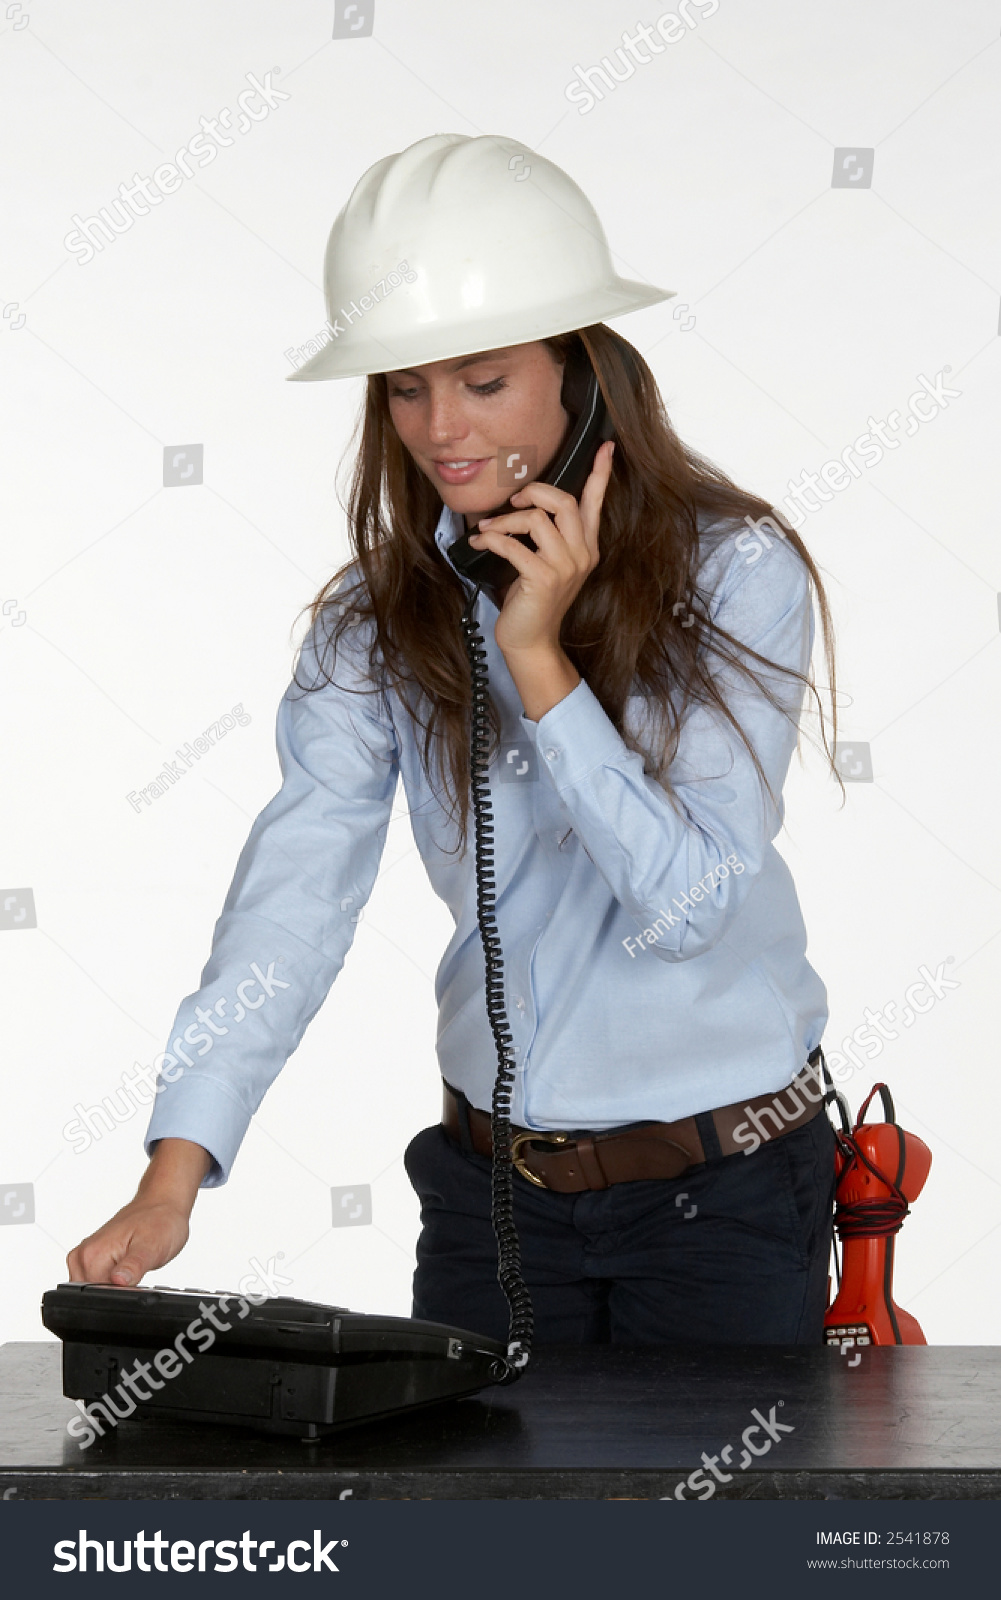 Young Female Telephone Technician Test Phone Stock Photo 2541878 ...